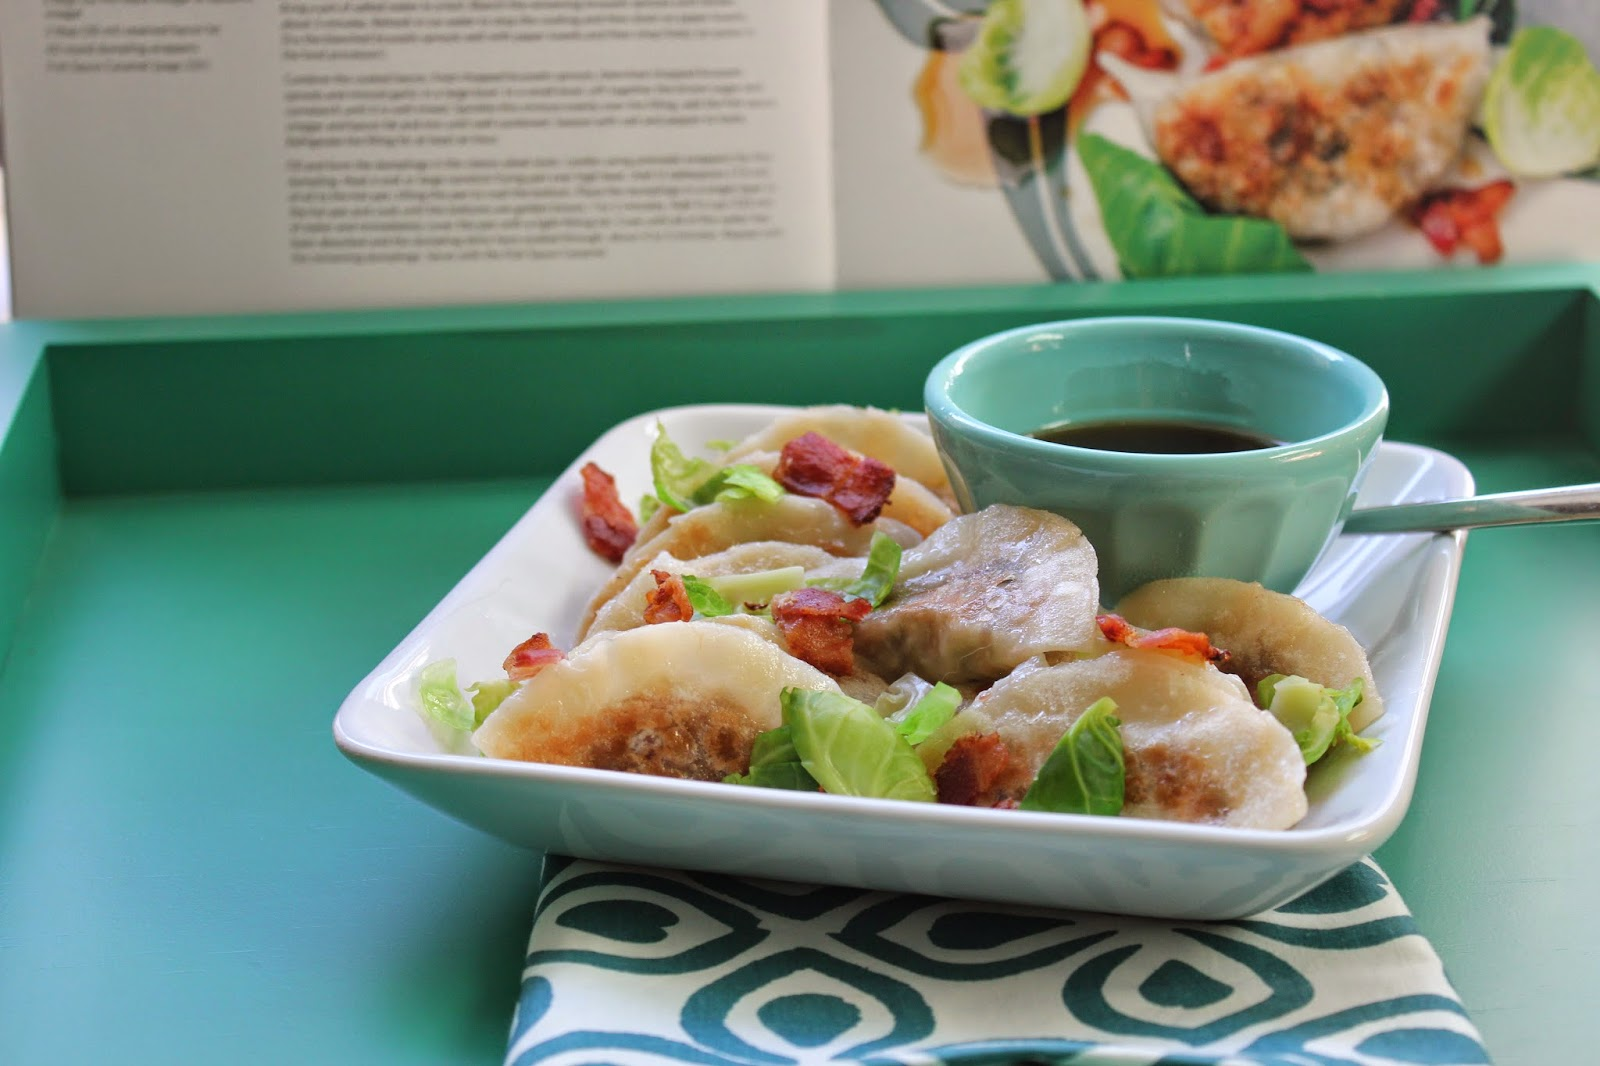 Brussels sprouts and bacon dumplings